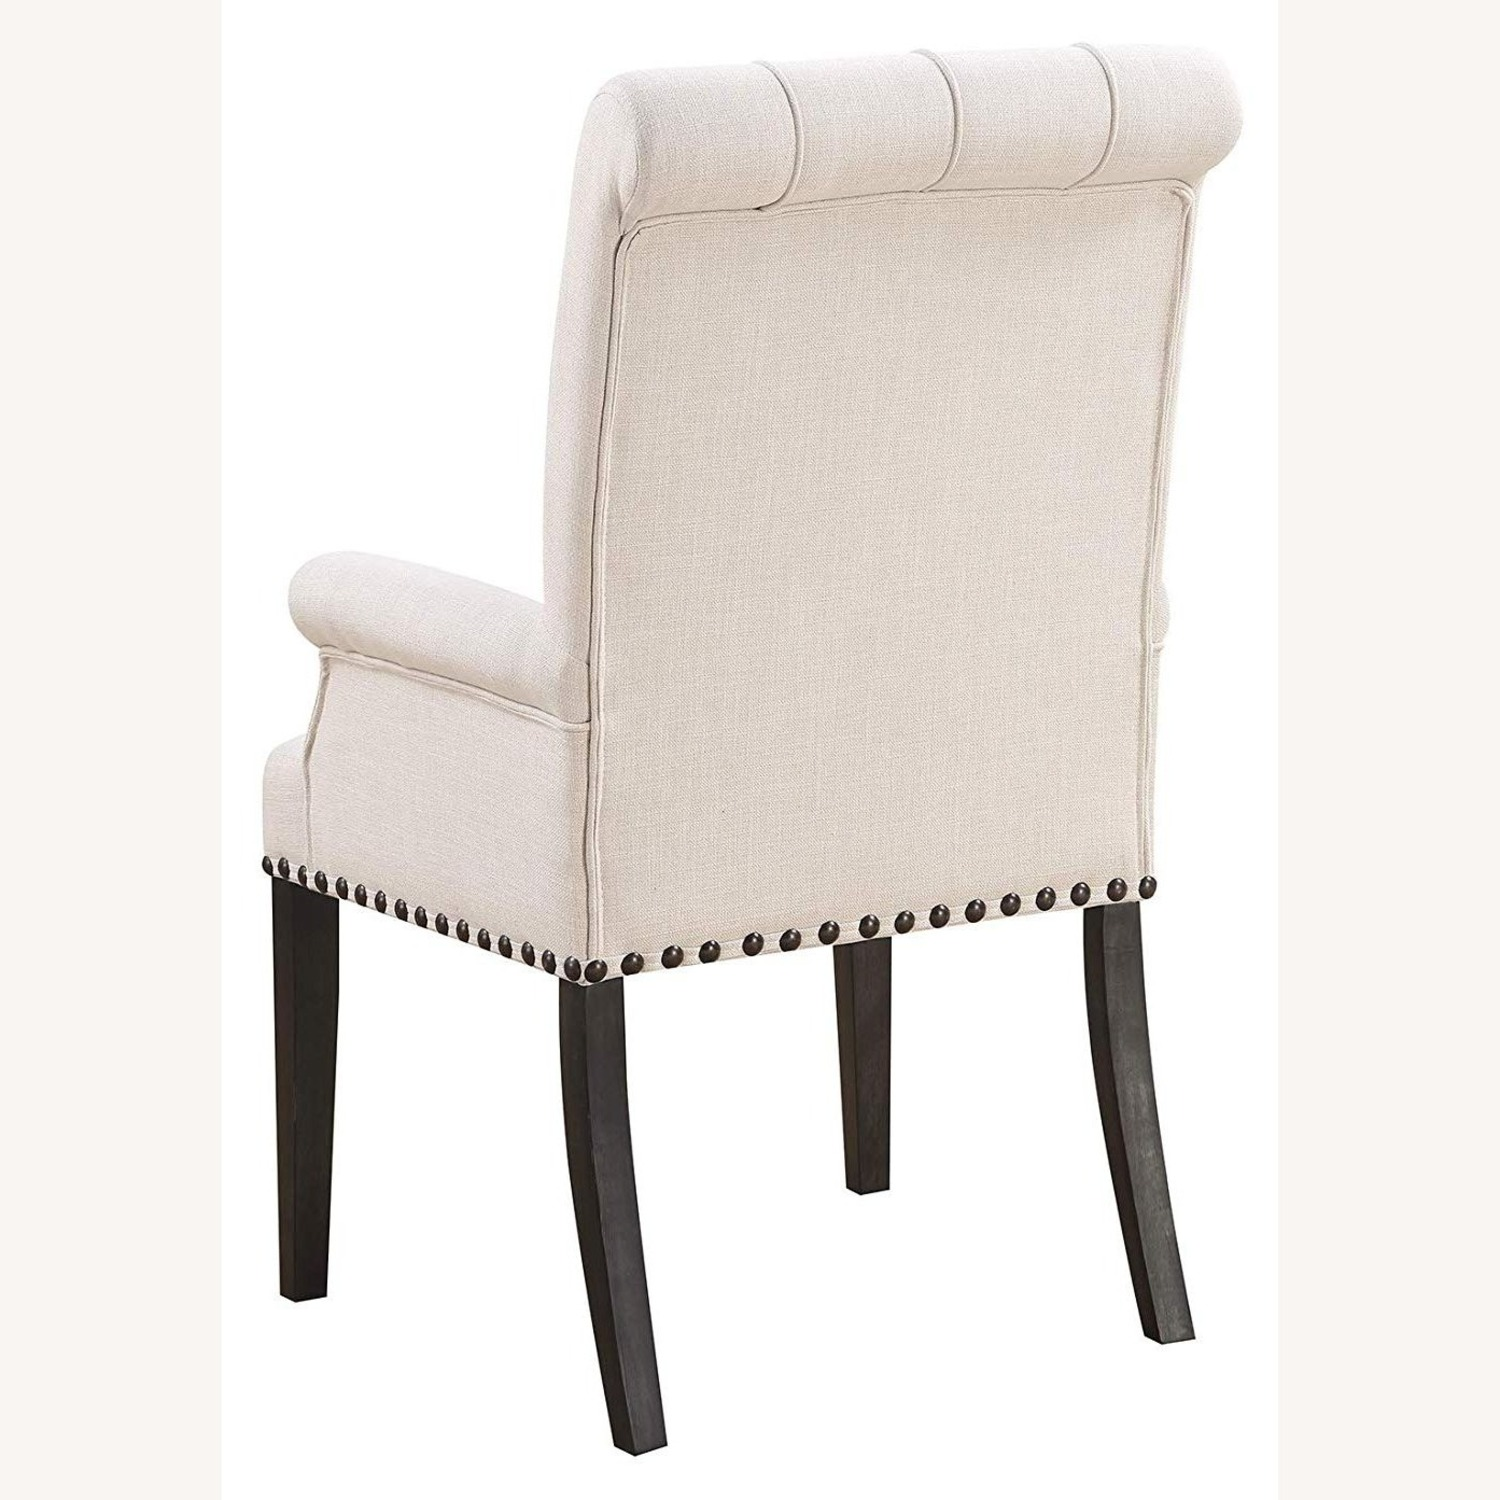 Upholstered Arm Chair In Beige Fabric - image-2